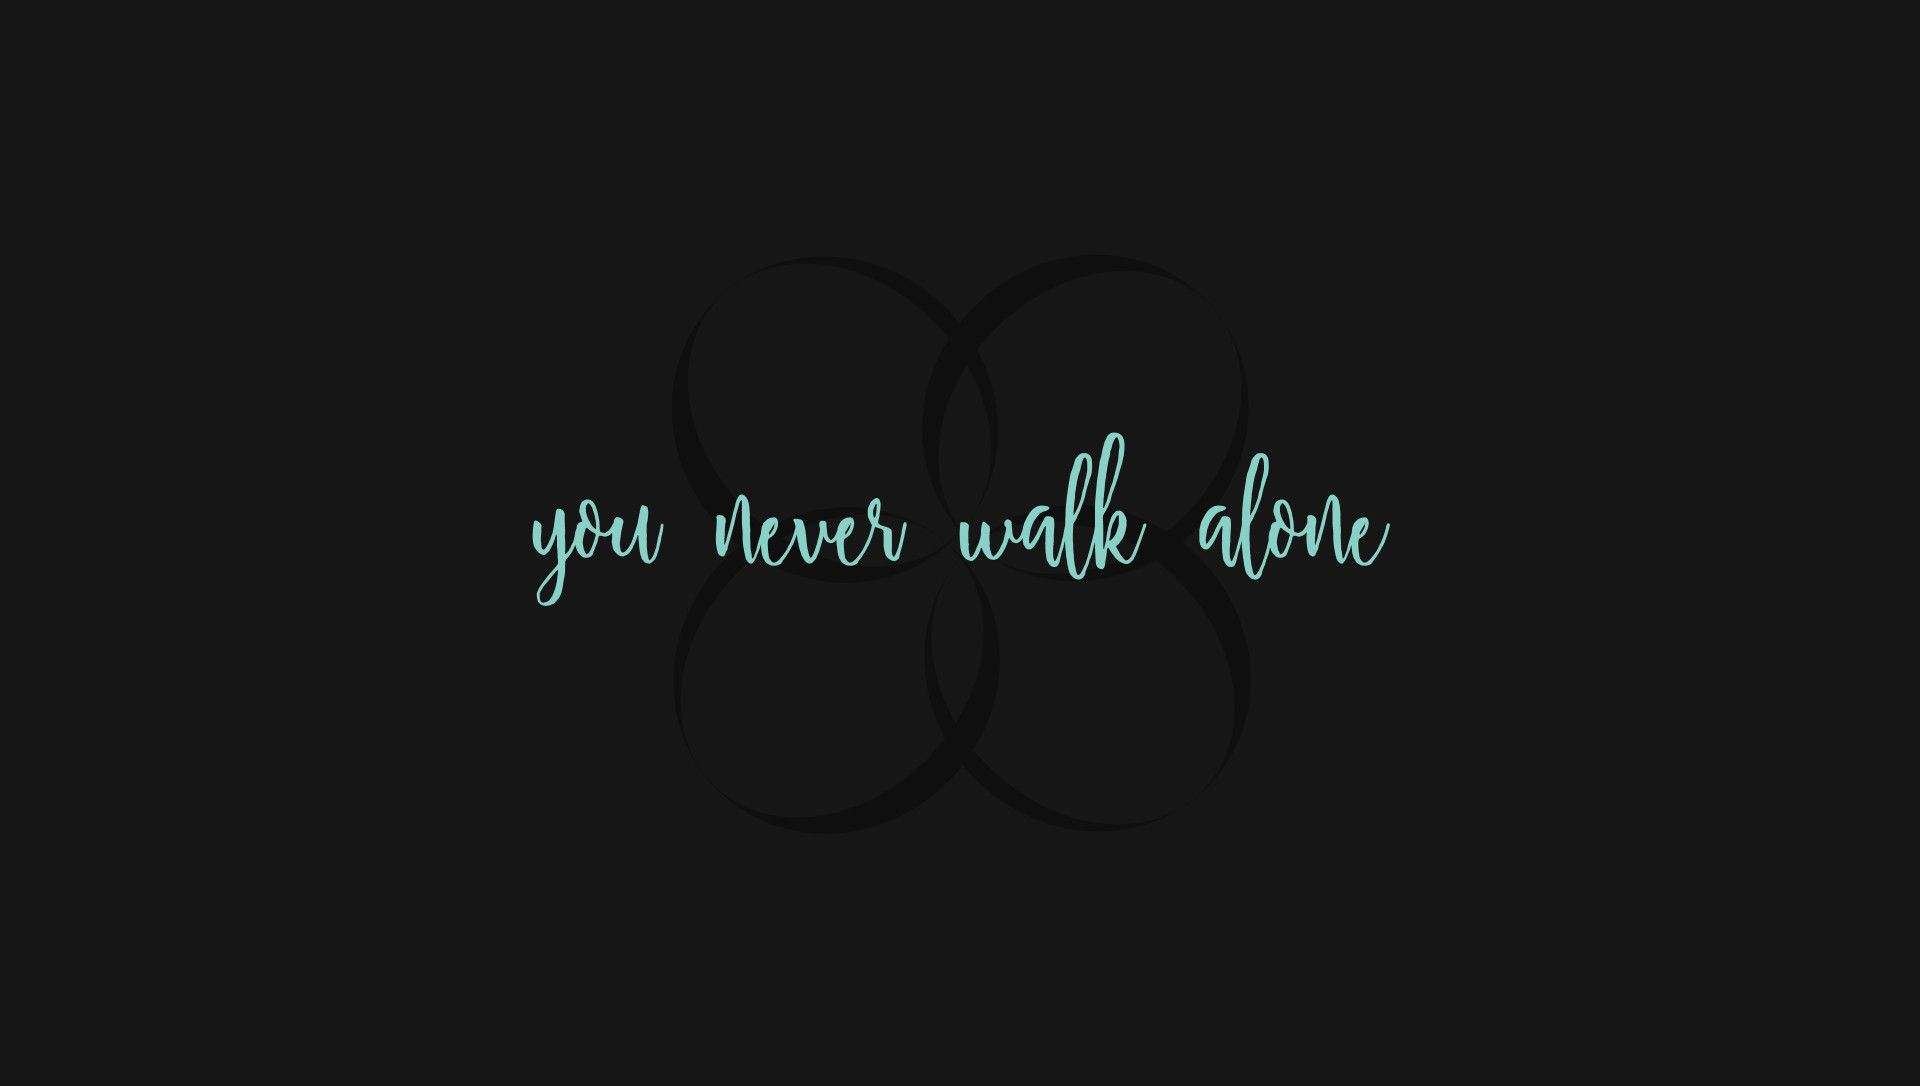 Pin On Hi We Are Bts Bts quotes laptop wallpaper hd